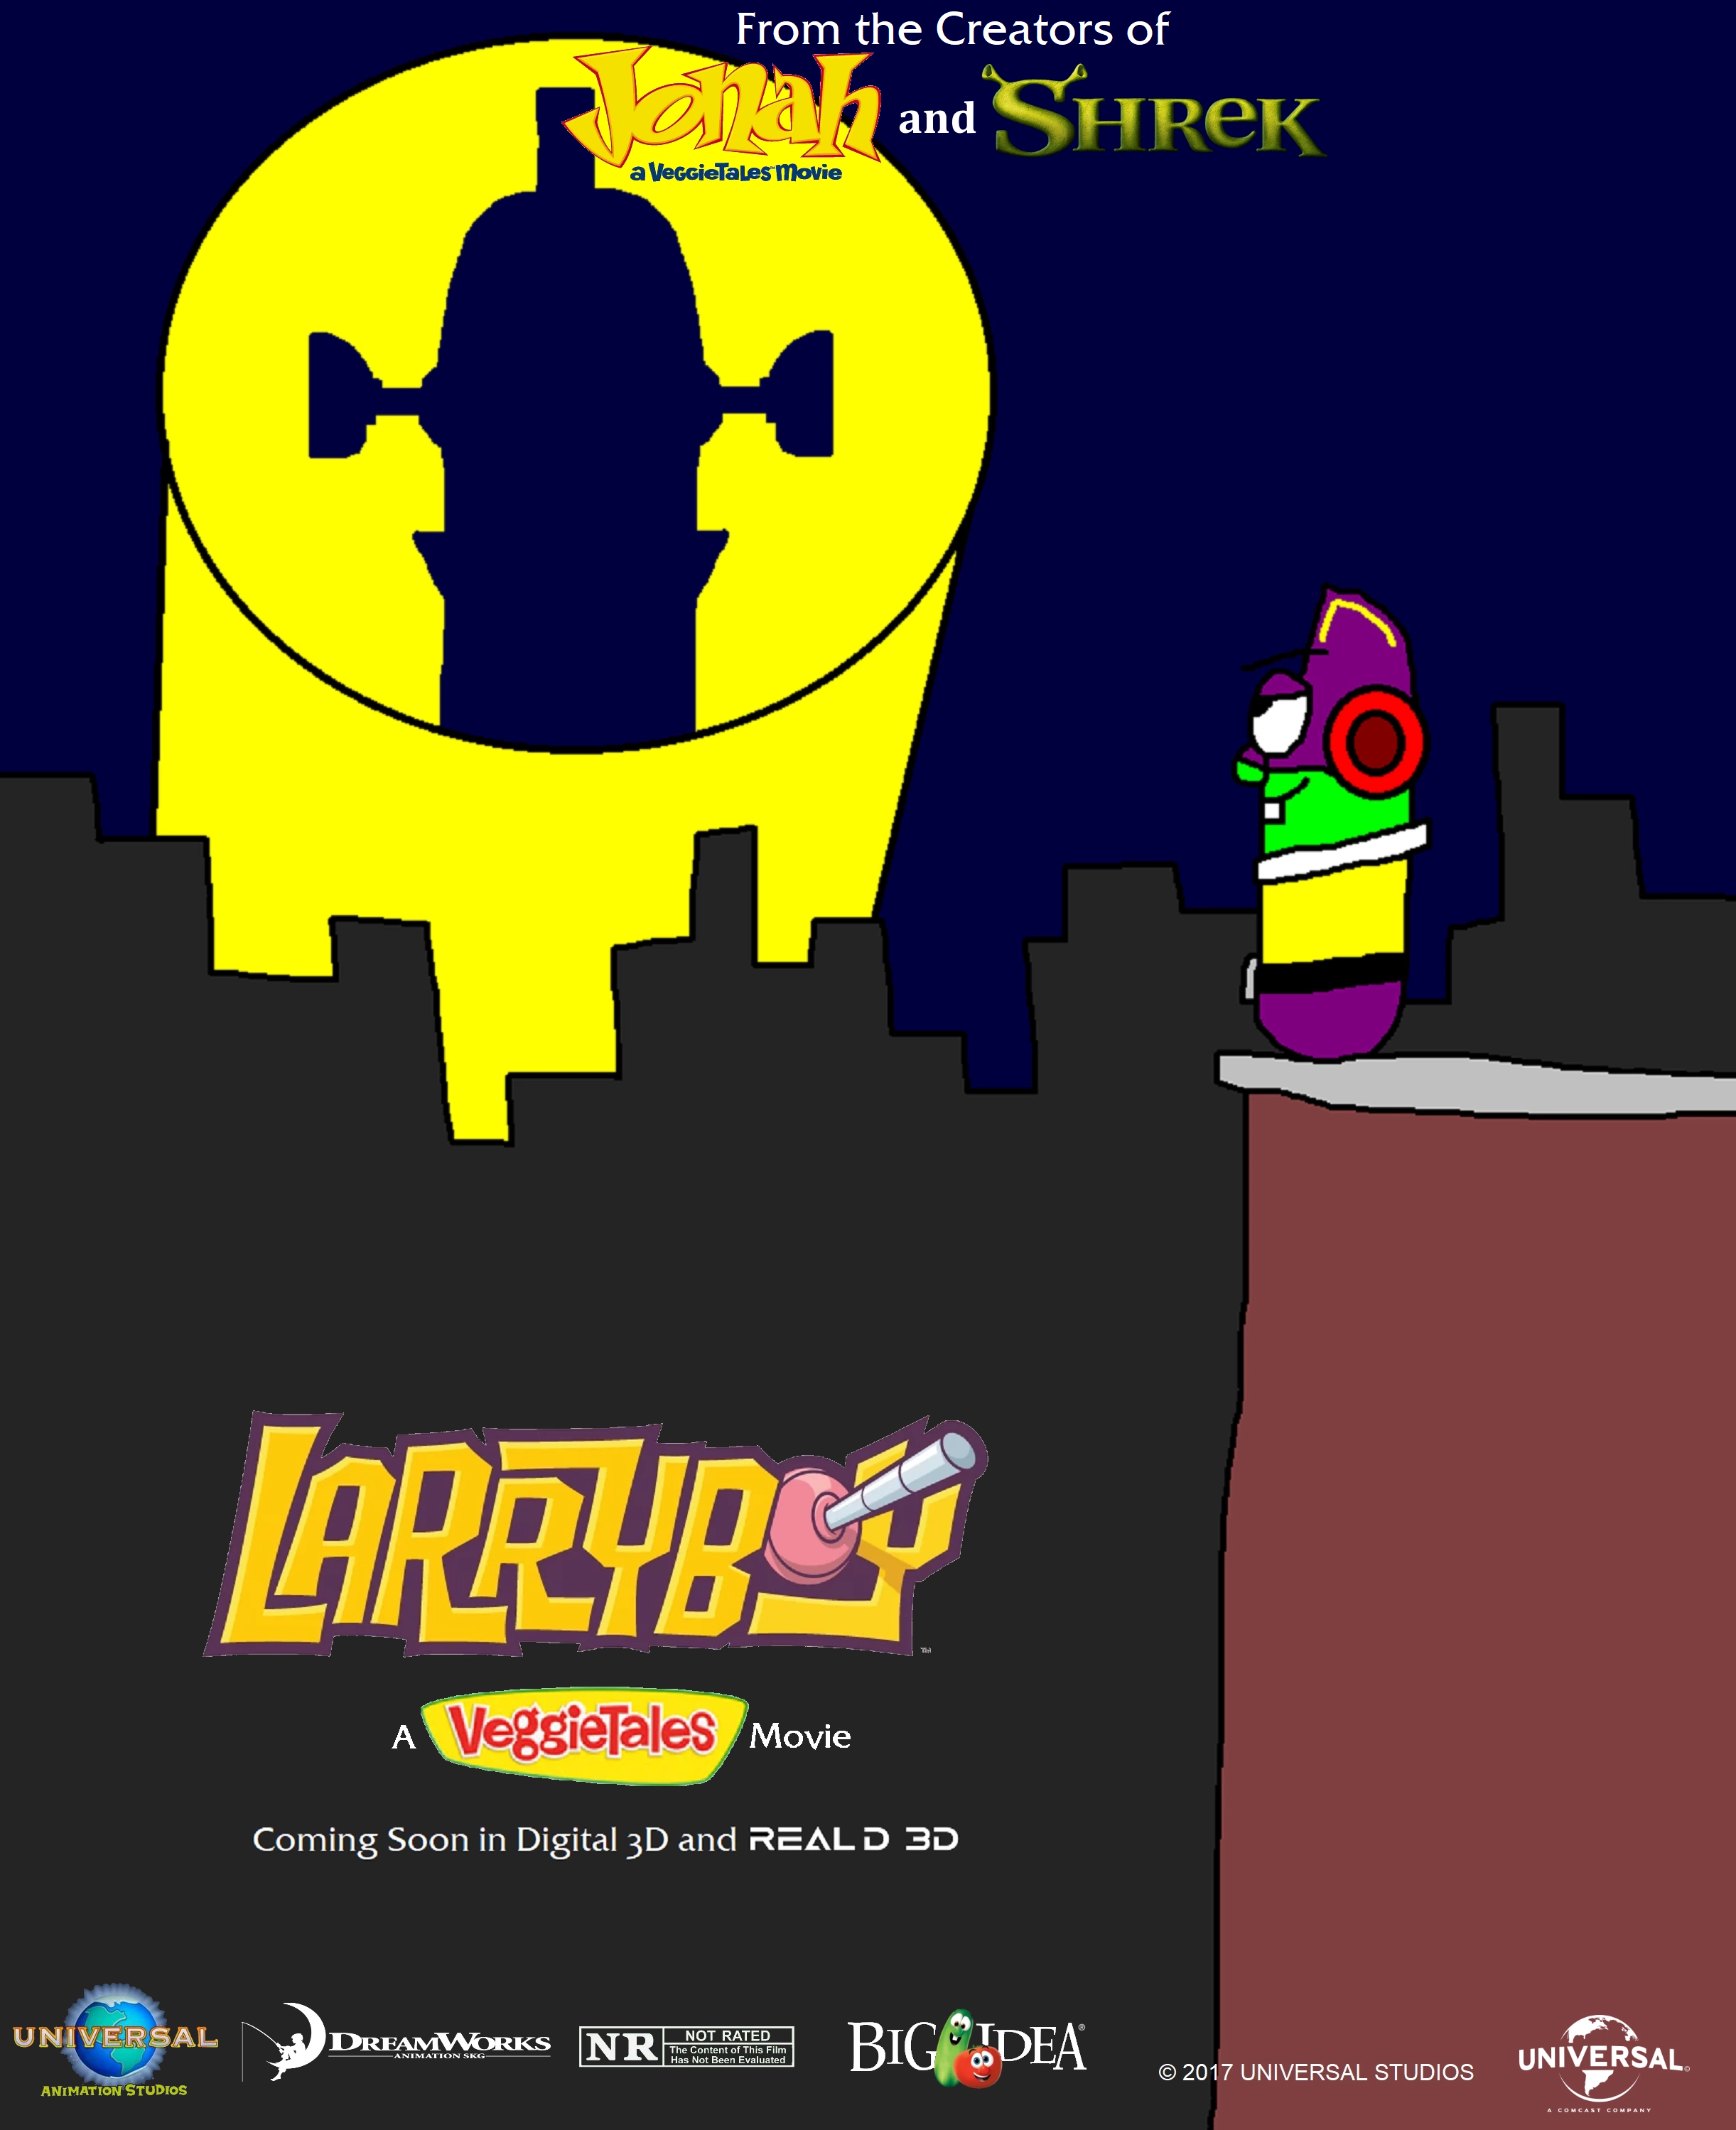 LarryBoy: A VeggieTales Movie